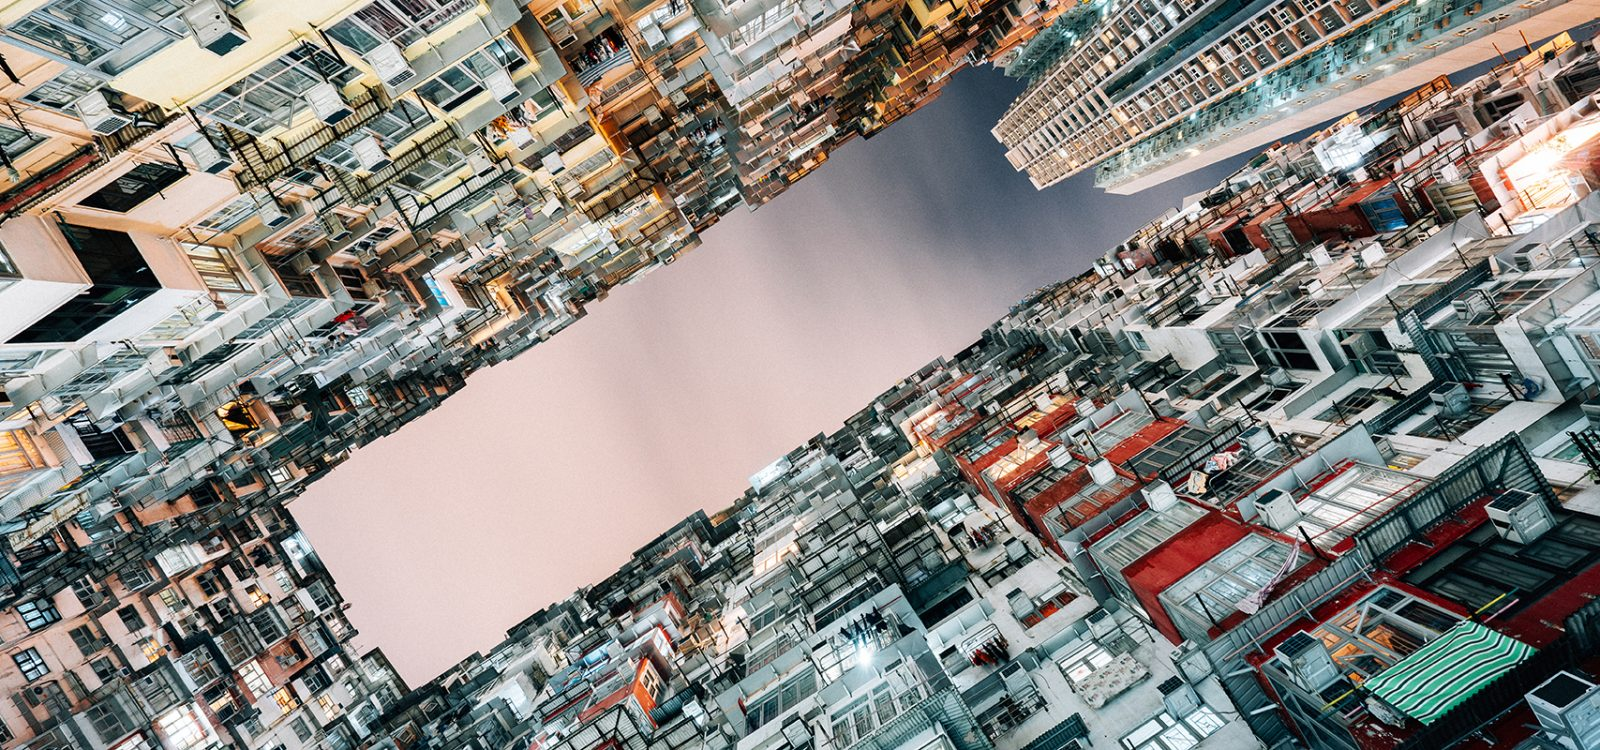 Crowded housing, apartment buildings in Hong Kong, China